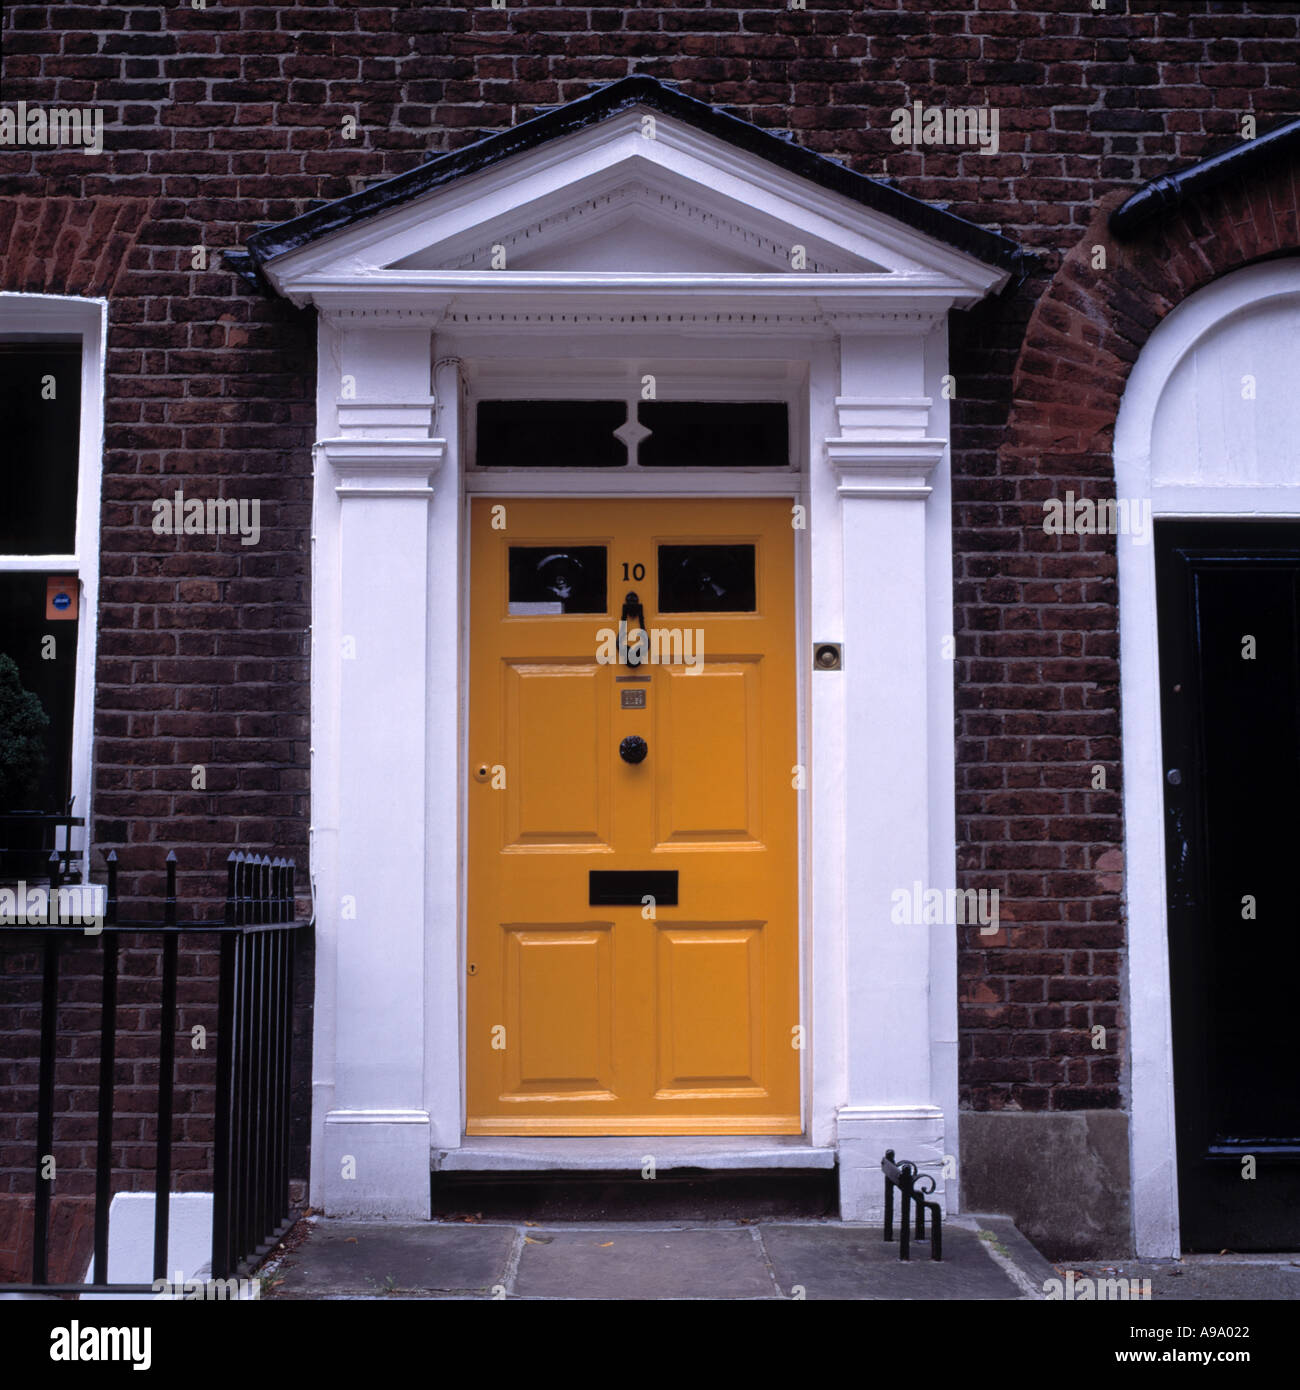 Front Porch Of Yellow House Stock Photo: Yellow Front Door With White Painted Portico On